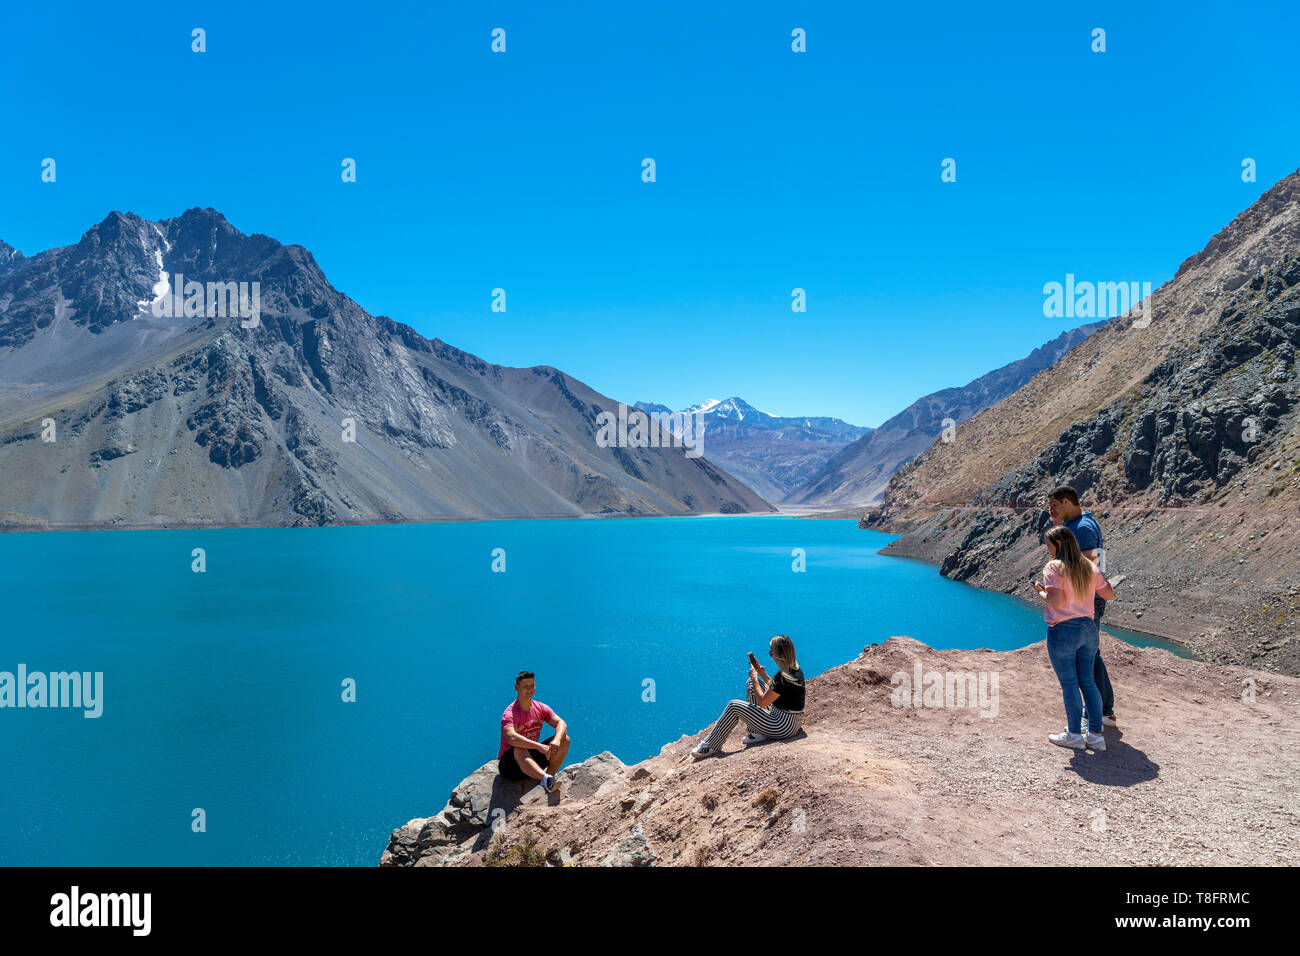 Chile, Andes Mountains. Tourists at the Embalse el Yeso (El Yeso Dam), Andes Mountains, Santiago Metropolitan Region, Chile, South America - Stock Image